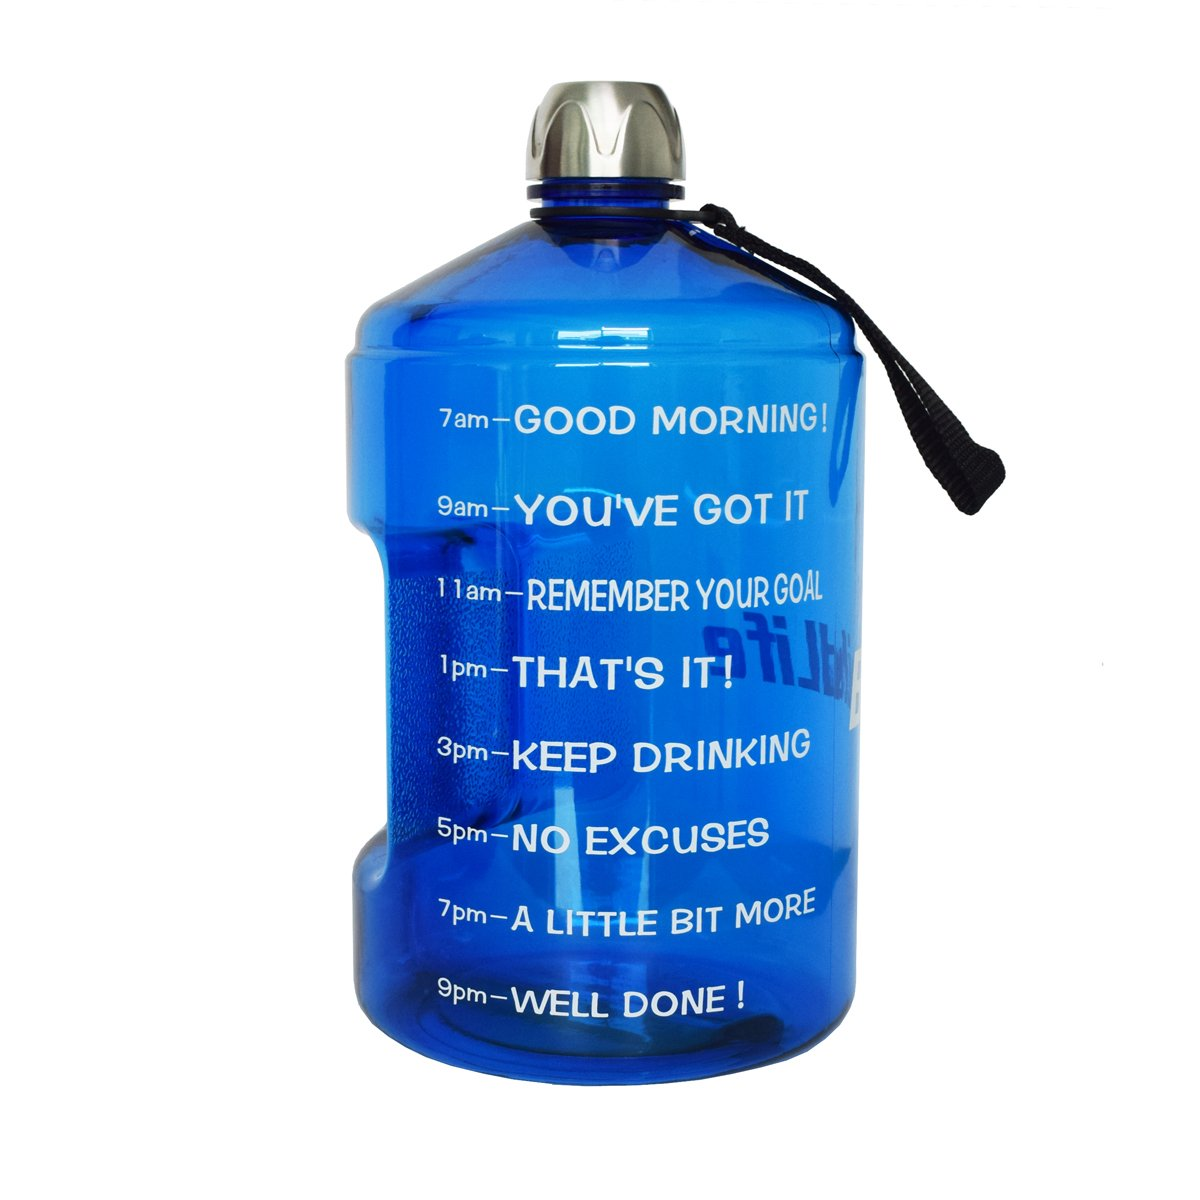 BuildLife 1 Gallon Water Bottle Motivational Fitness Workout with Time Marker  Drink More Water Daily   Clear BPA-Free   Large 128 Ounce/43OZ of Water Throughout The Day (1 Gallon-Blue, 1 Gallon)